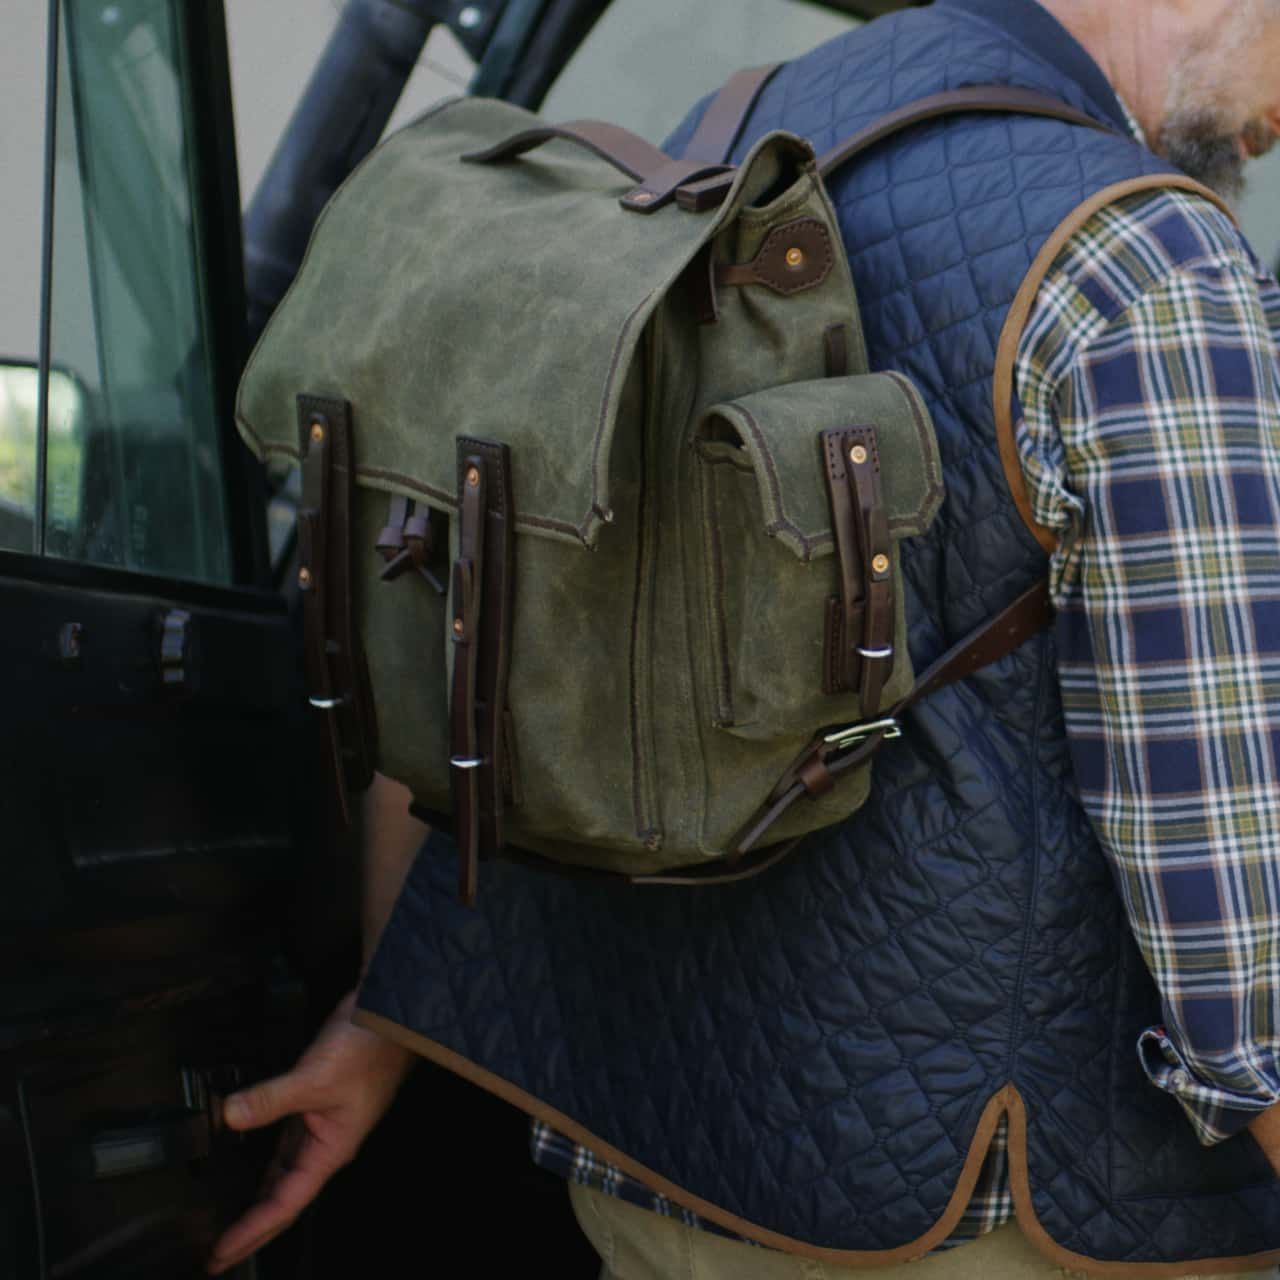 A man wearing a blue vest, holding a left hand car door and a canvas backpack medium in moss green canvas on his back